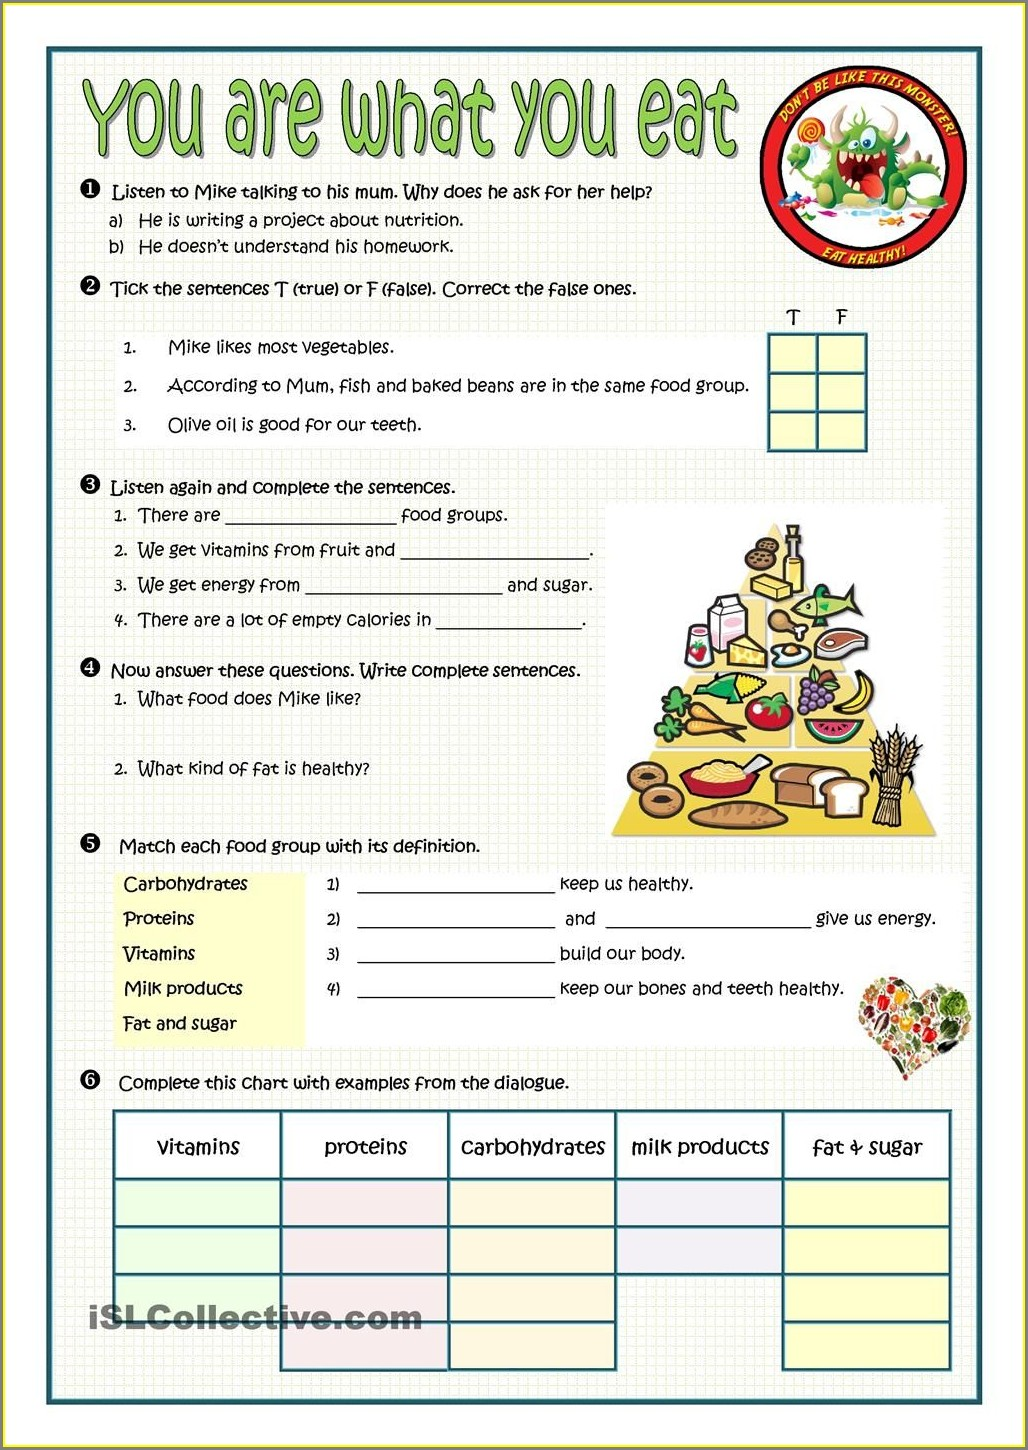 Worksheet On Food We Eat For Class 4